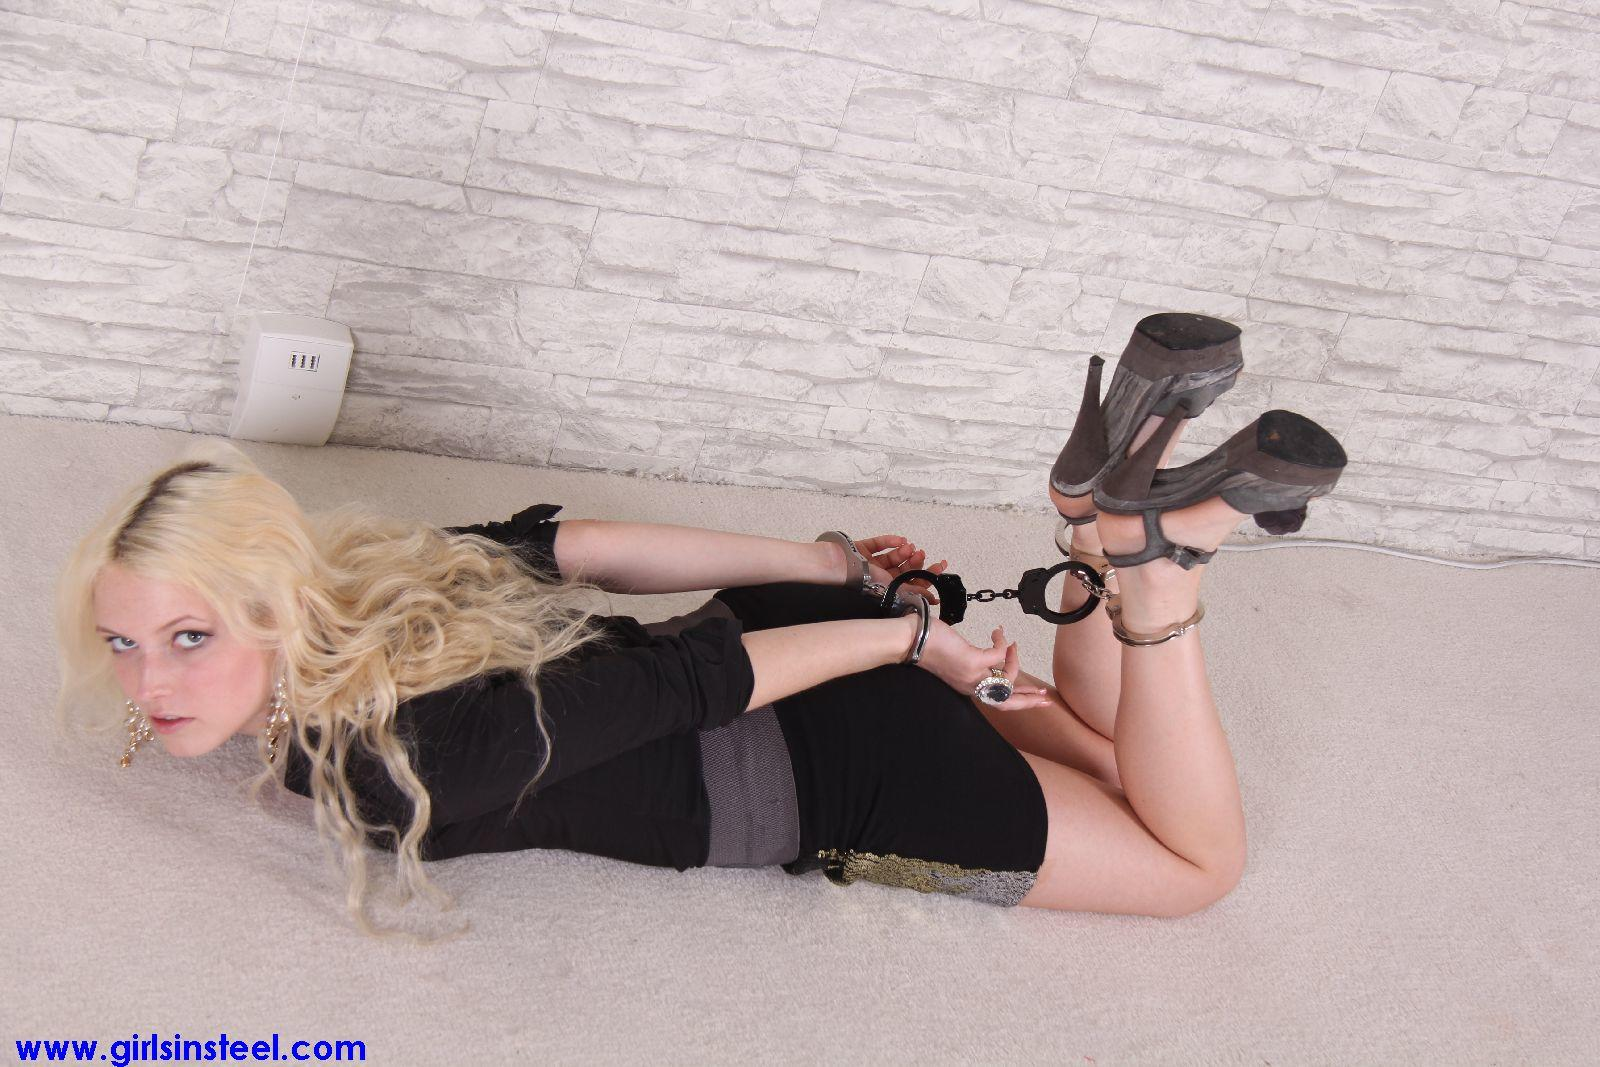 and-oral-bondage-girls-in-handcuffs-gif